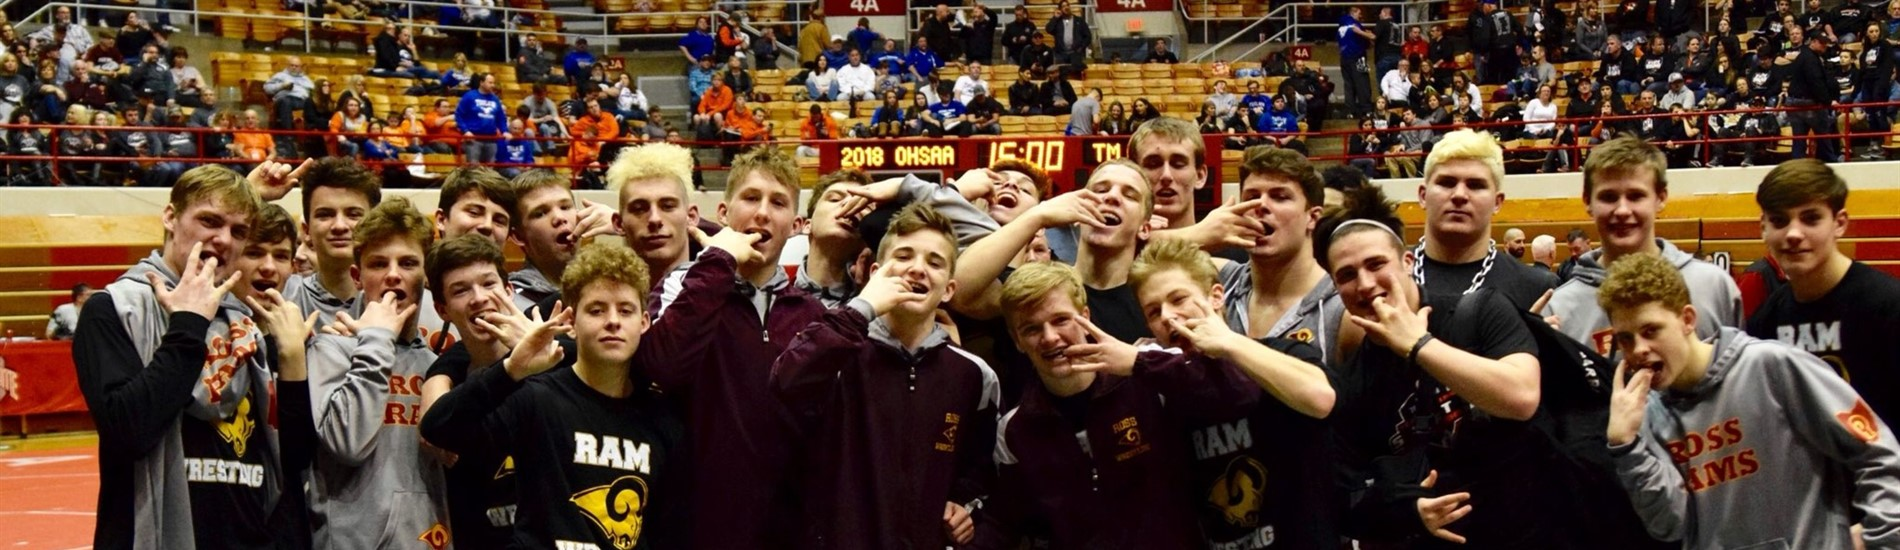 2018 Ram Wrestling at State Duals